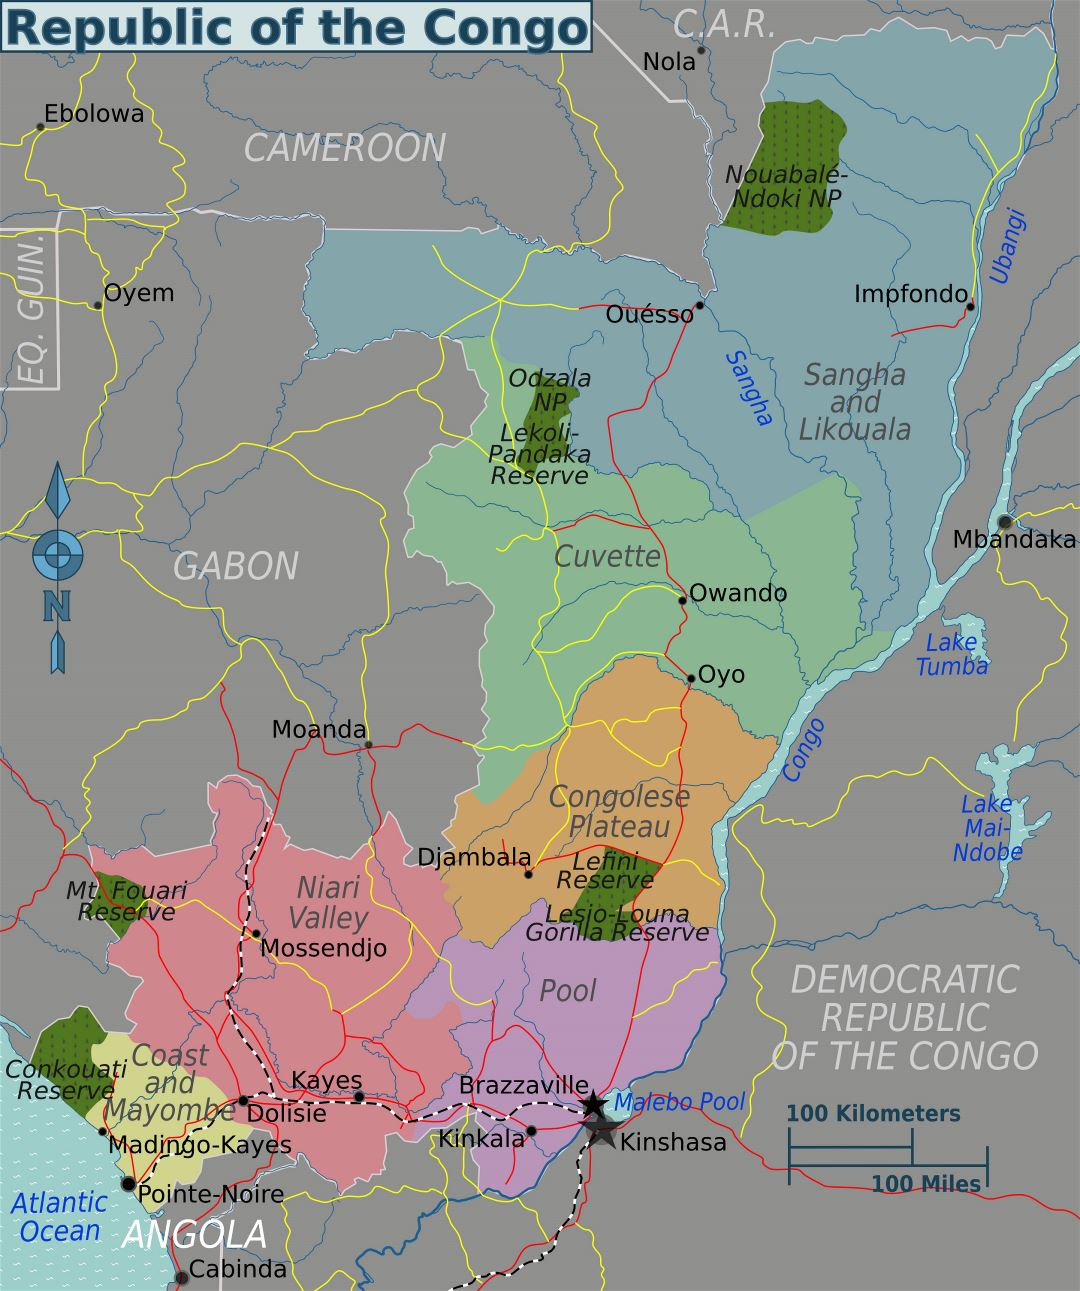 Large regions map of Congo